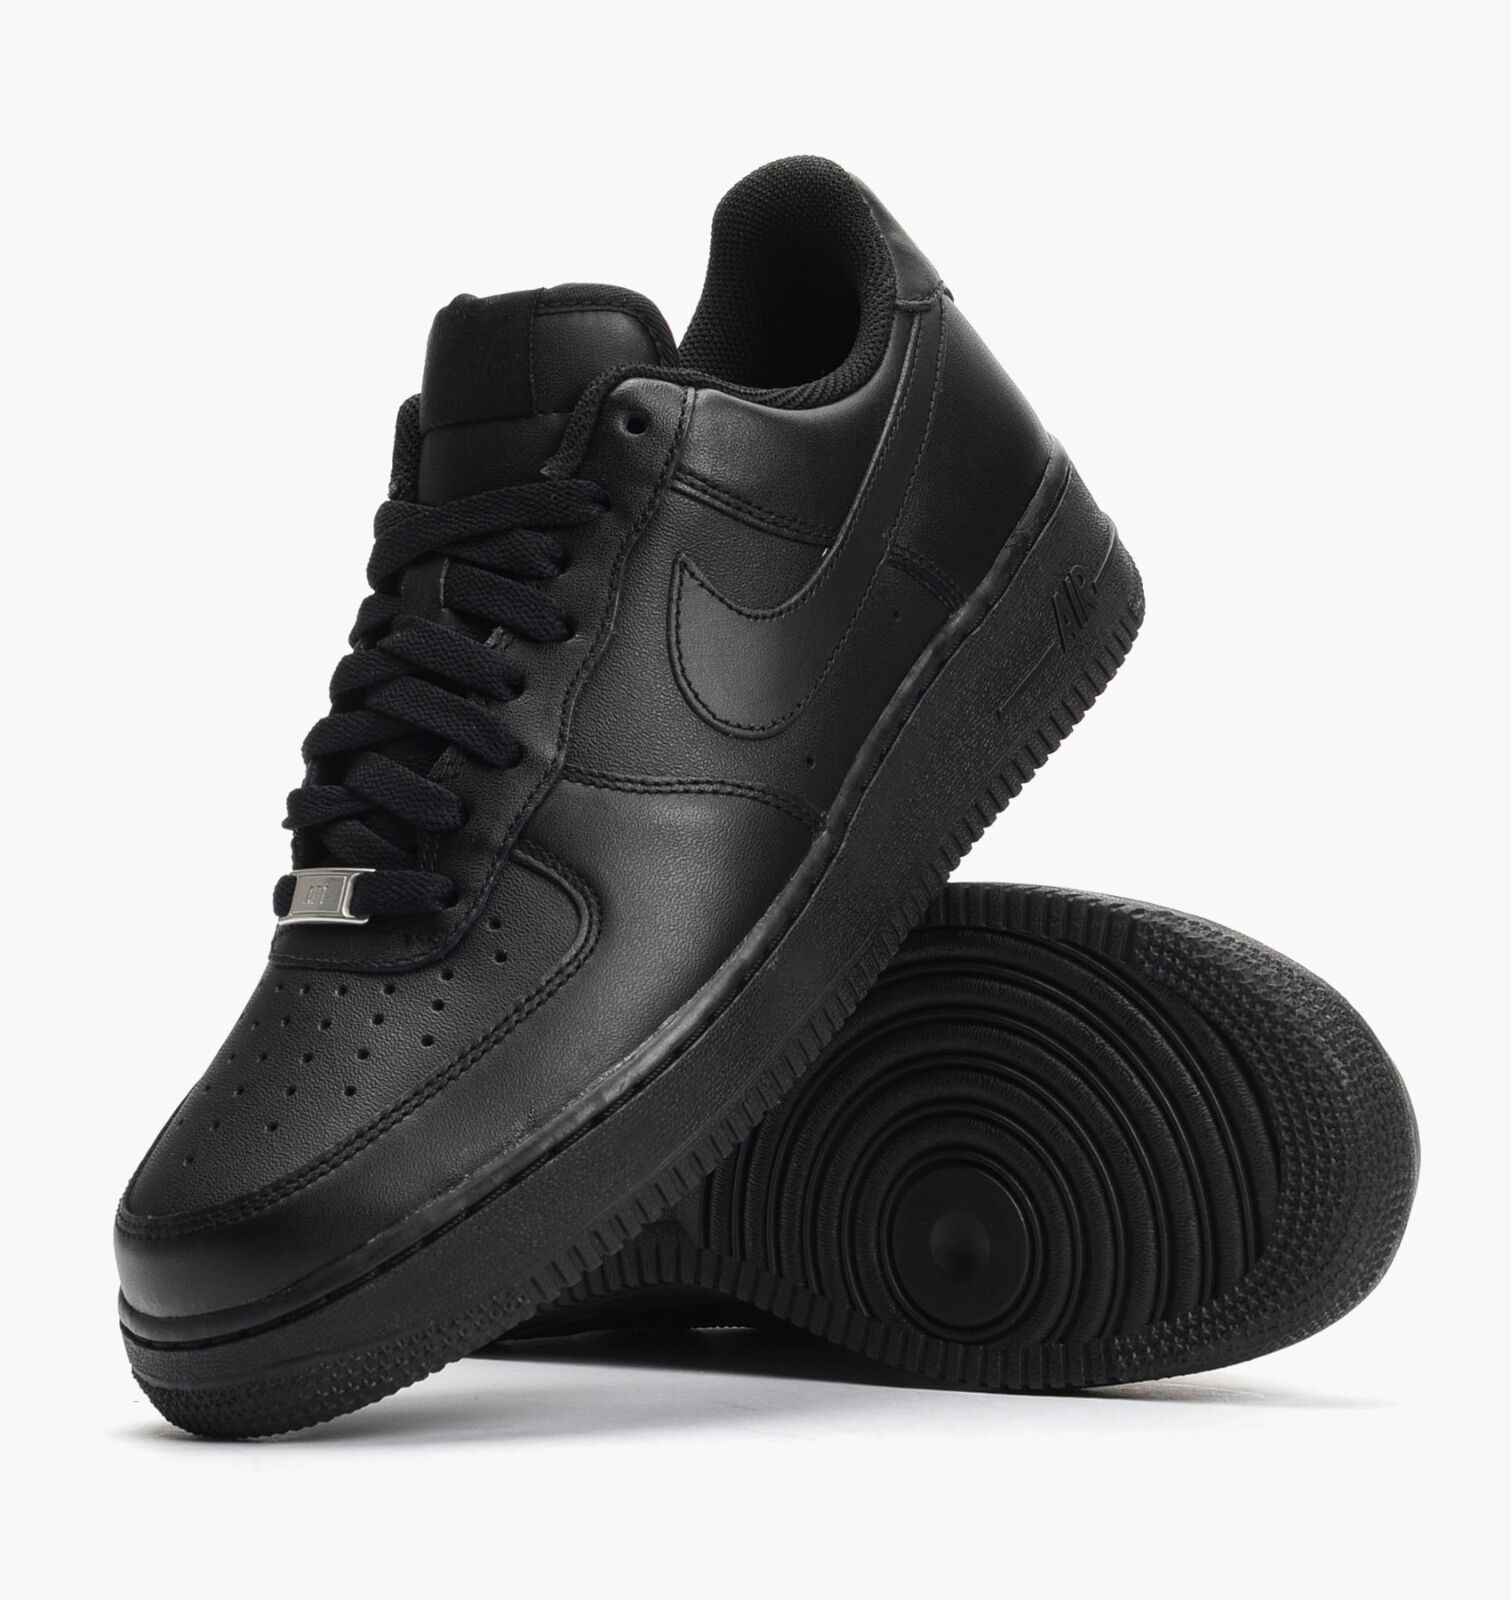 NIKE AIR FORCE 1 LOW OG MENS BLACK/BLACK ALL LEATHER 315122-001 100% AUTHENTIC